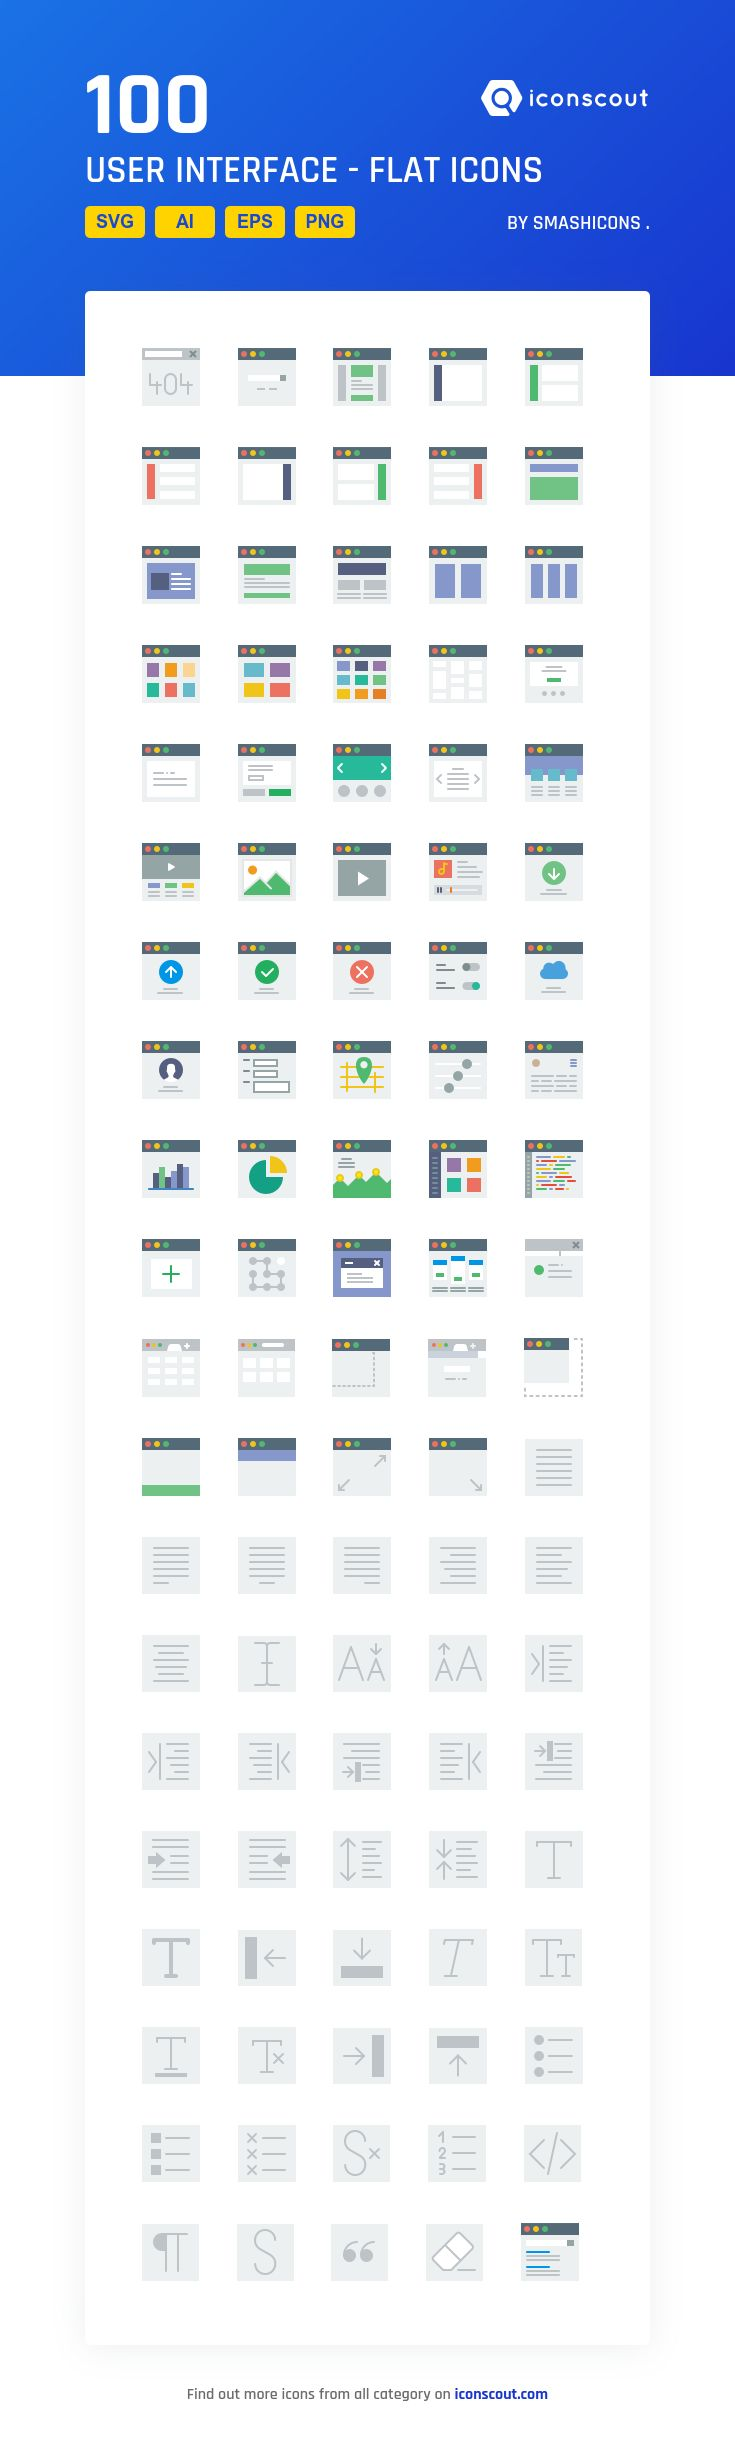 User Interface - Flat  Icon Pack - 100 Flat Icons